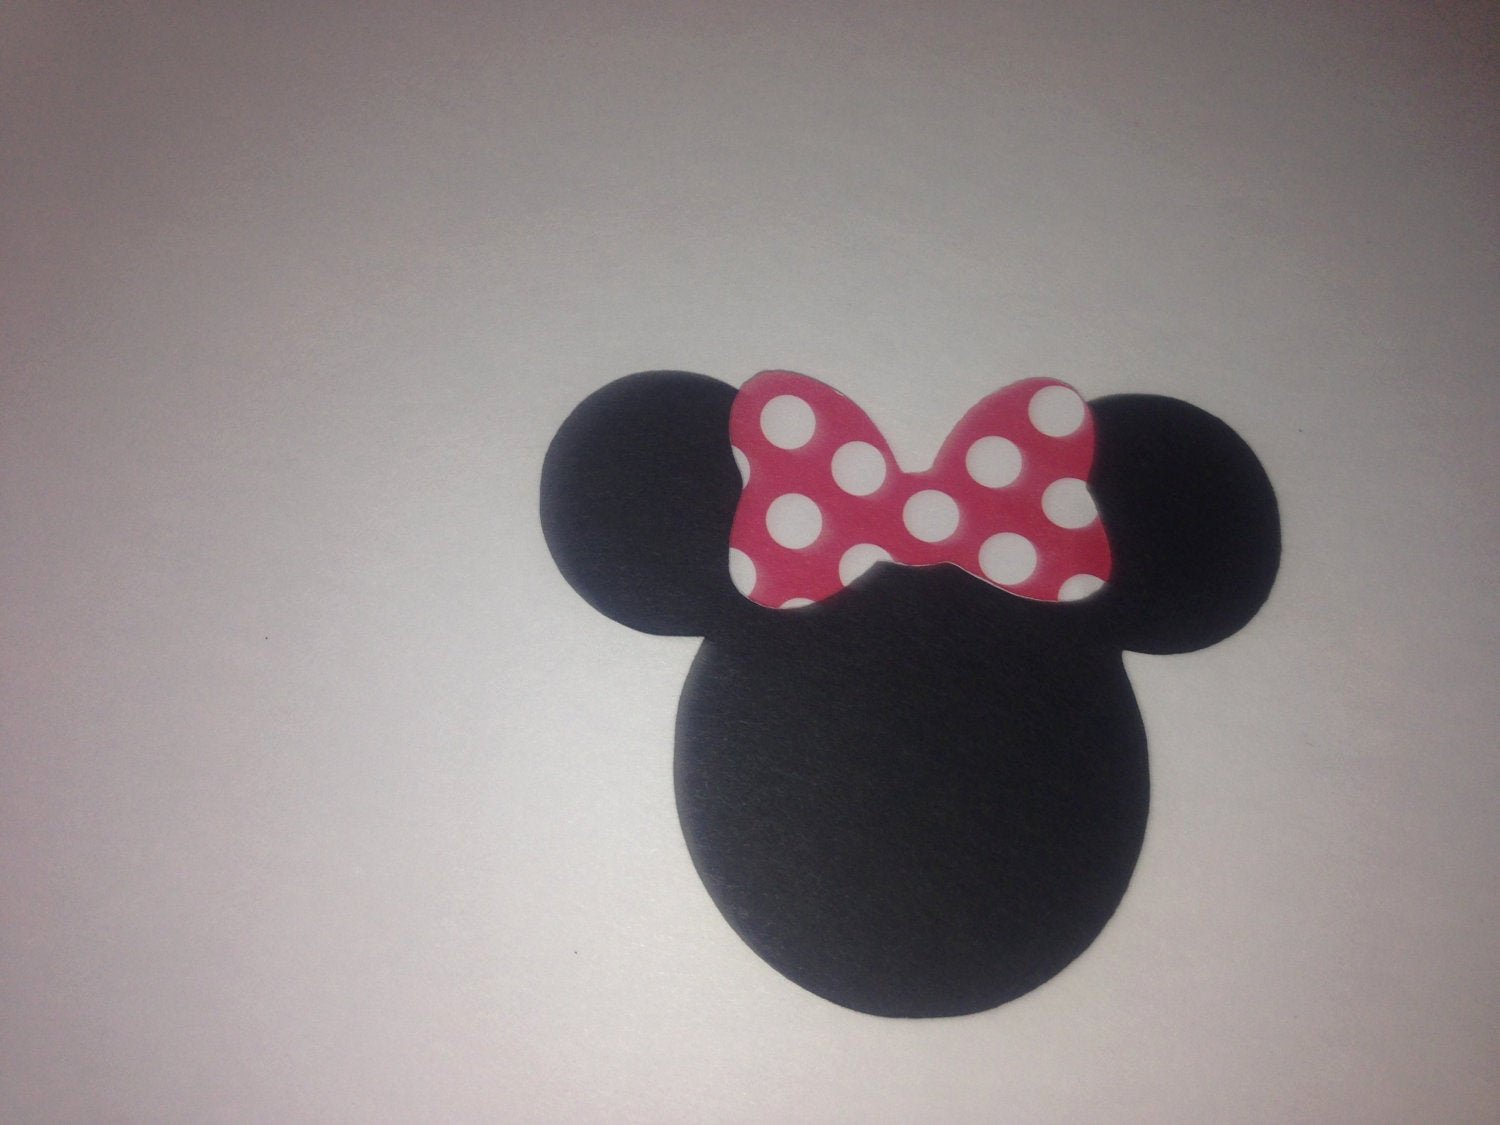 Minnie Mouse Cut Out Head New 30 2 5 Minnie Mouse Head Silhouettes Die Cut Black